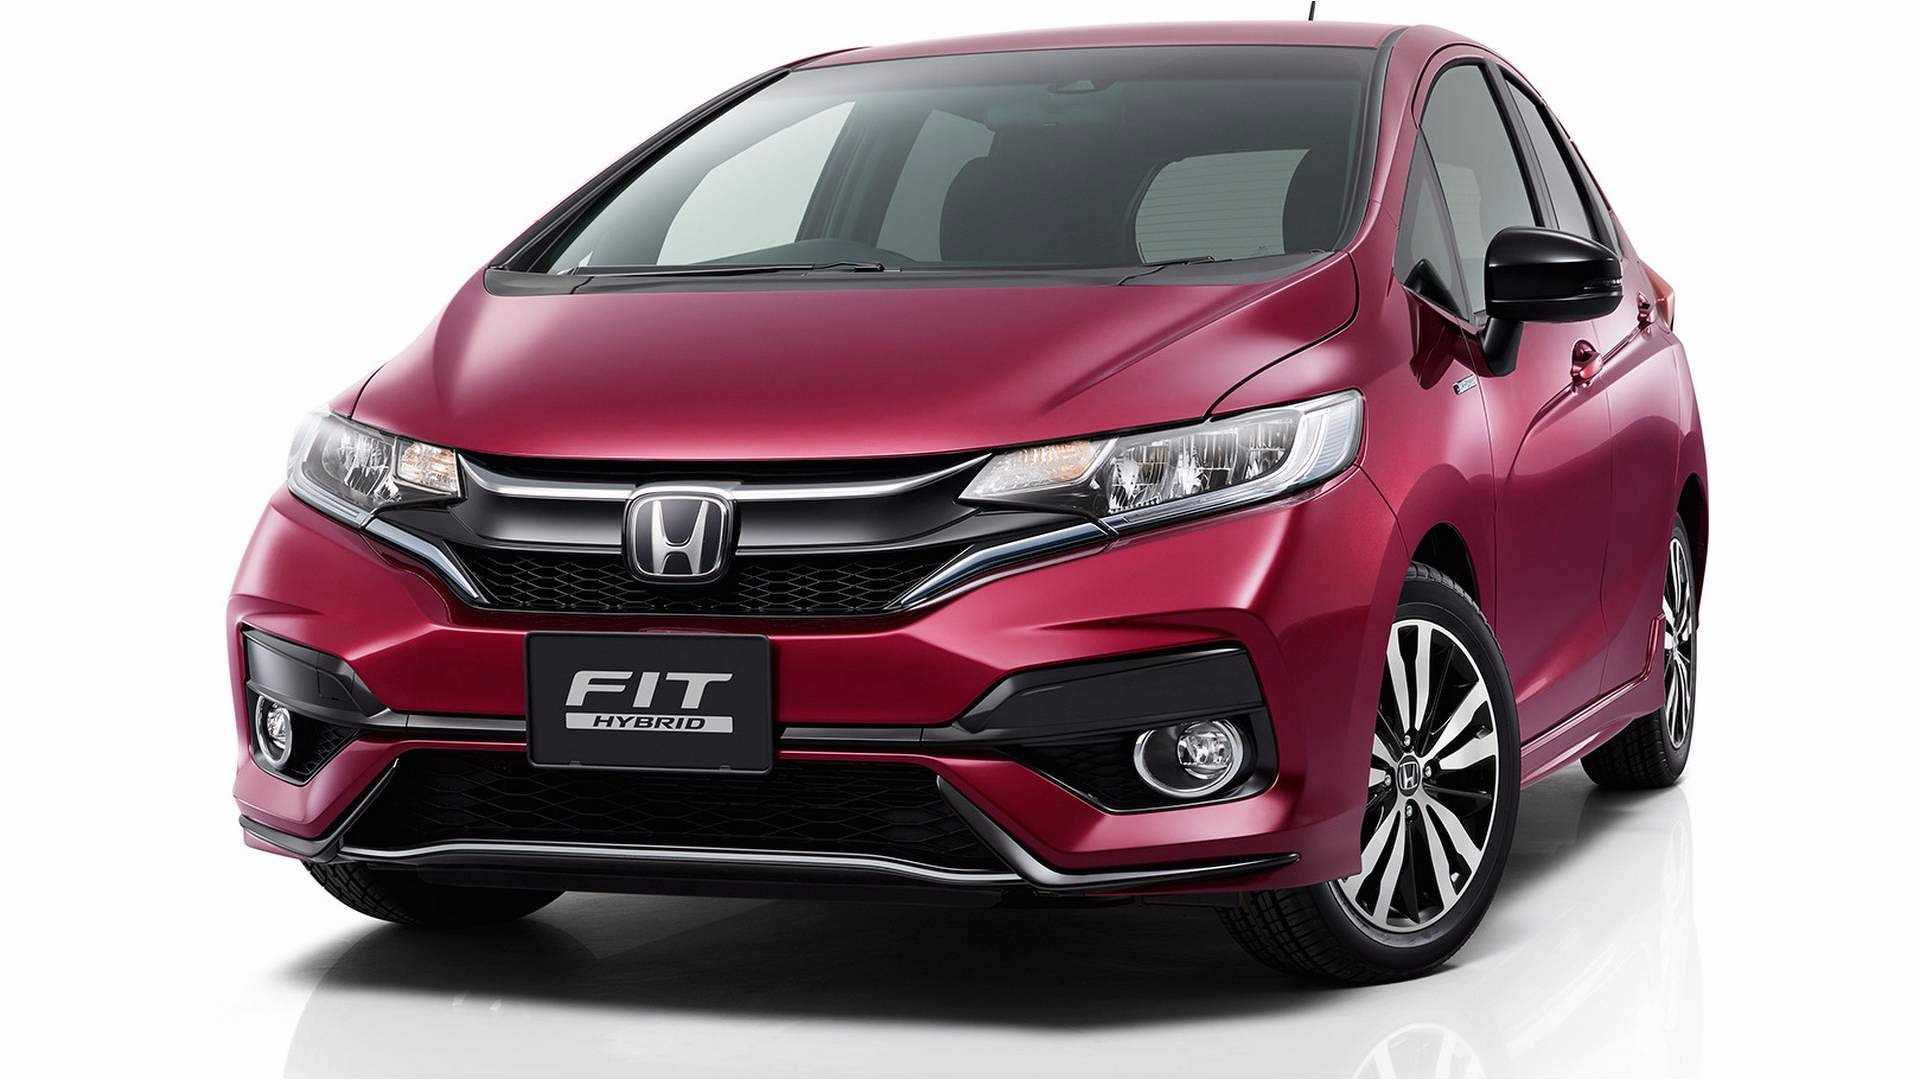 2018_Honda_Jazz_facelift_12